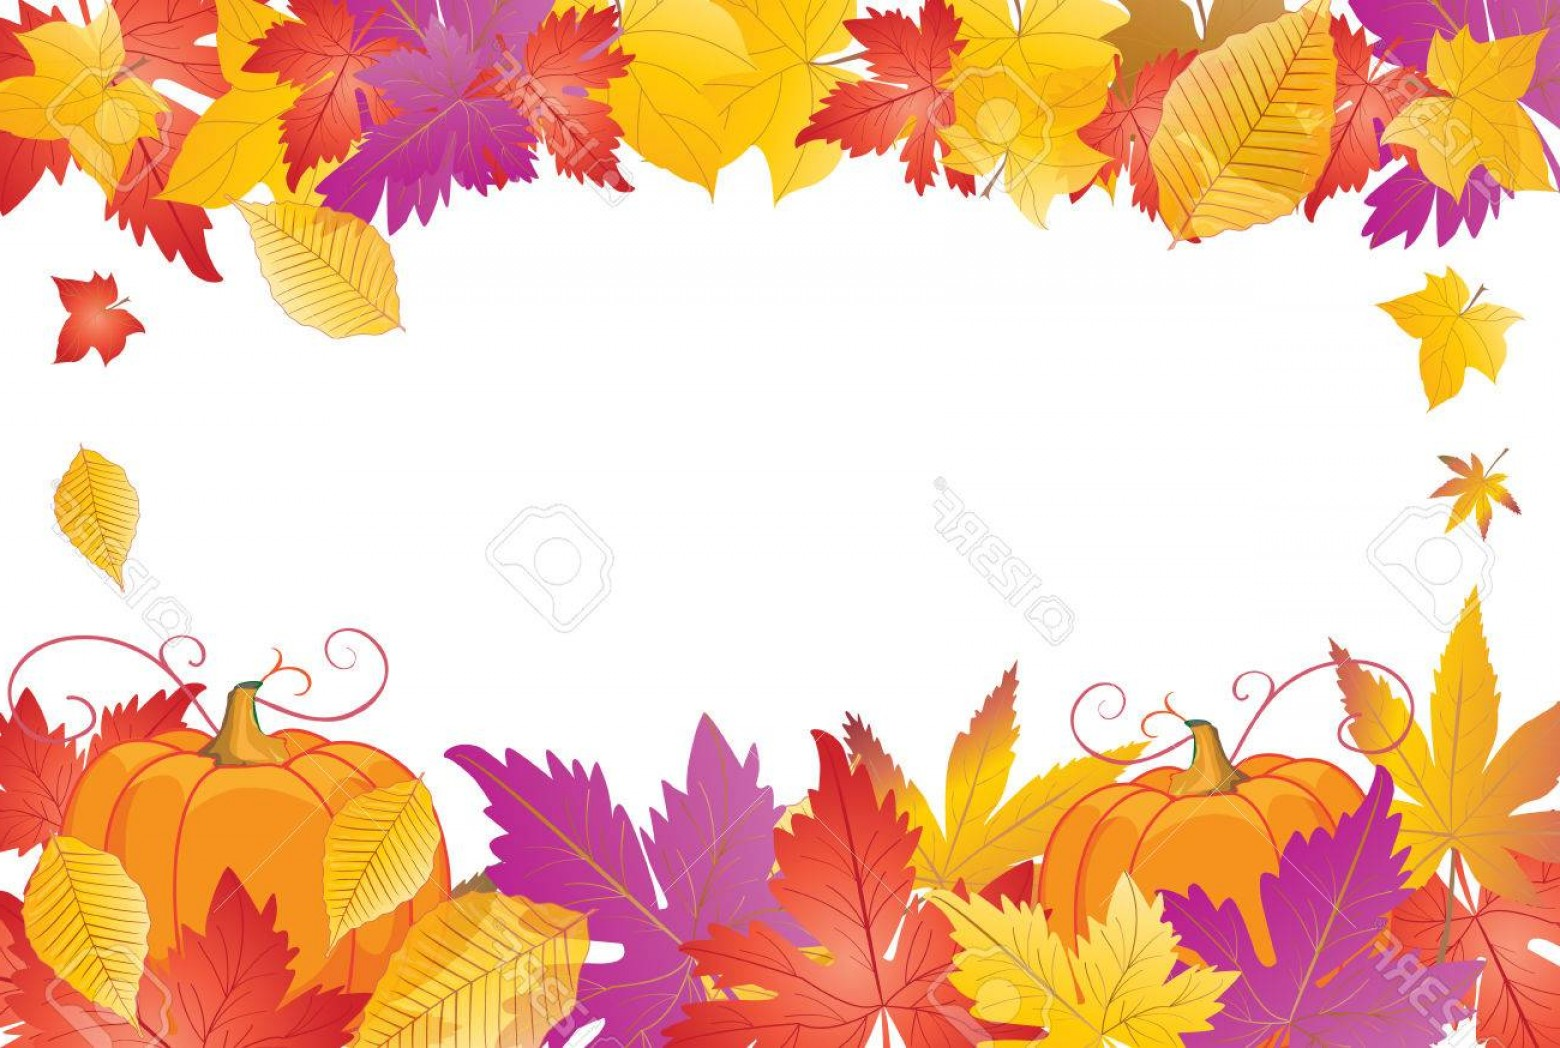 Thanksgiving Border Vector: Photostock Vector Thanksgiving Holiday Background Fall Colorful Leaves And Pumpkin Frame Autumn Maple Leaves Border Ve